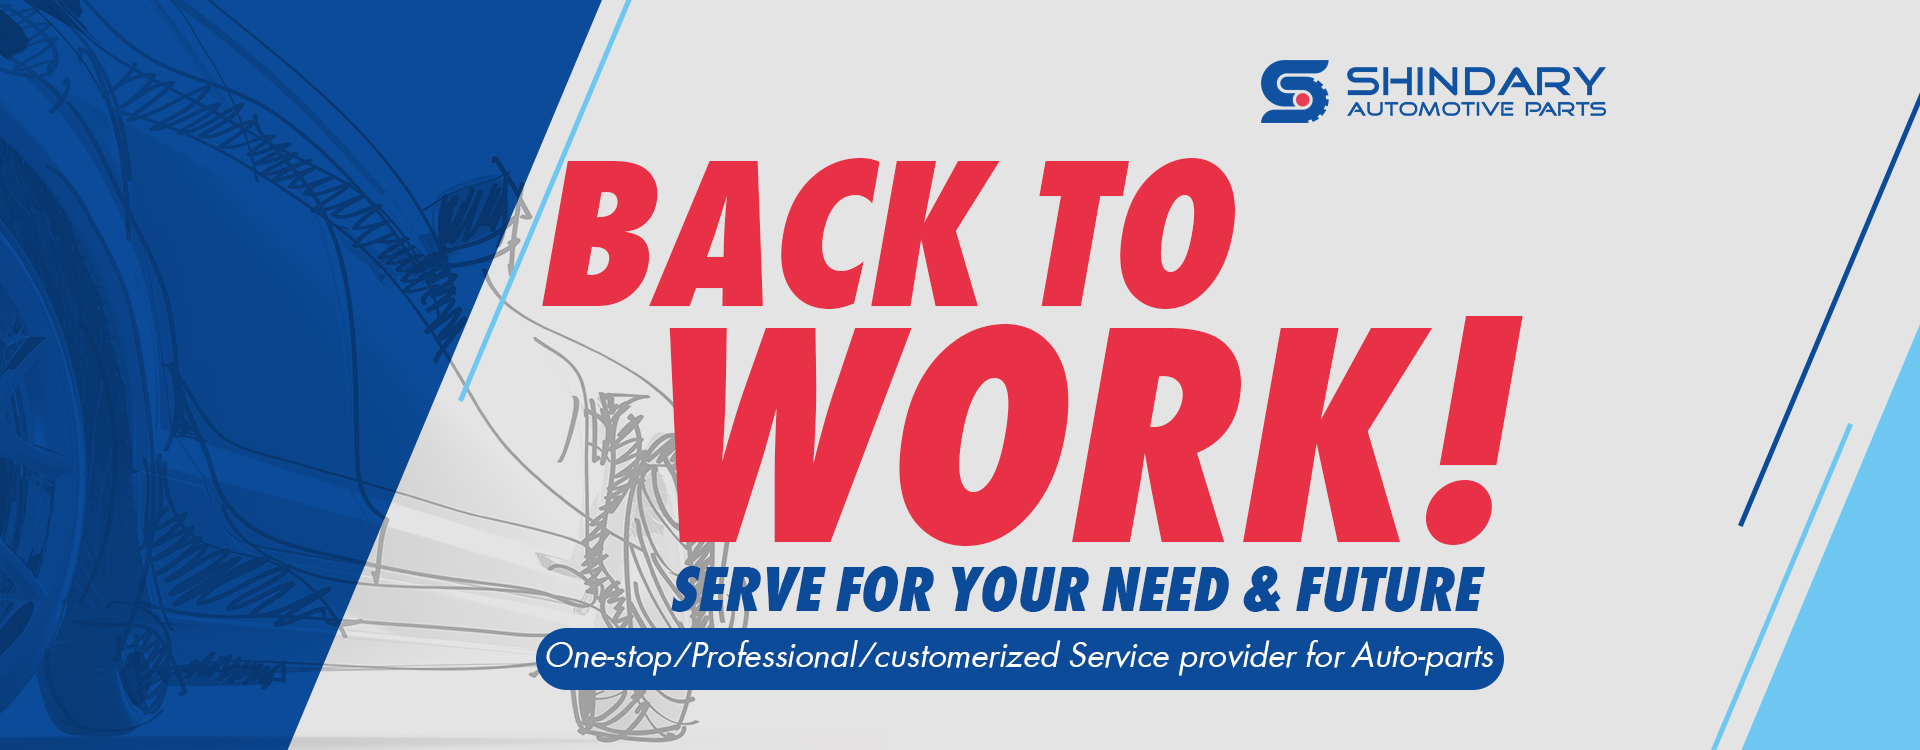 shindary automotive parts back to work